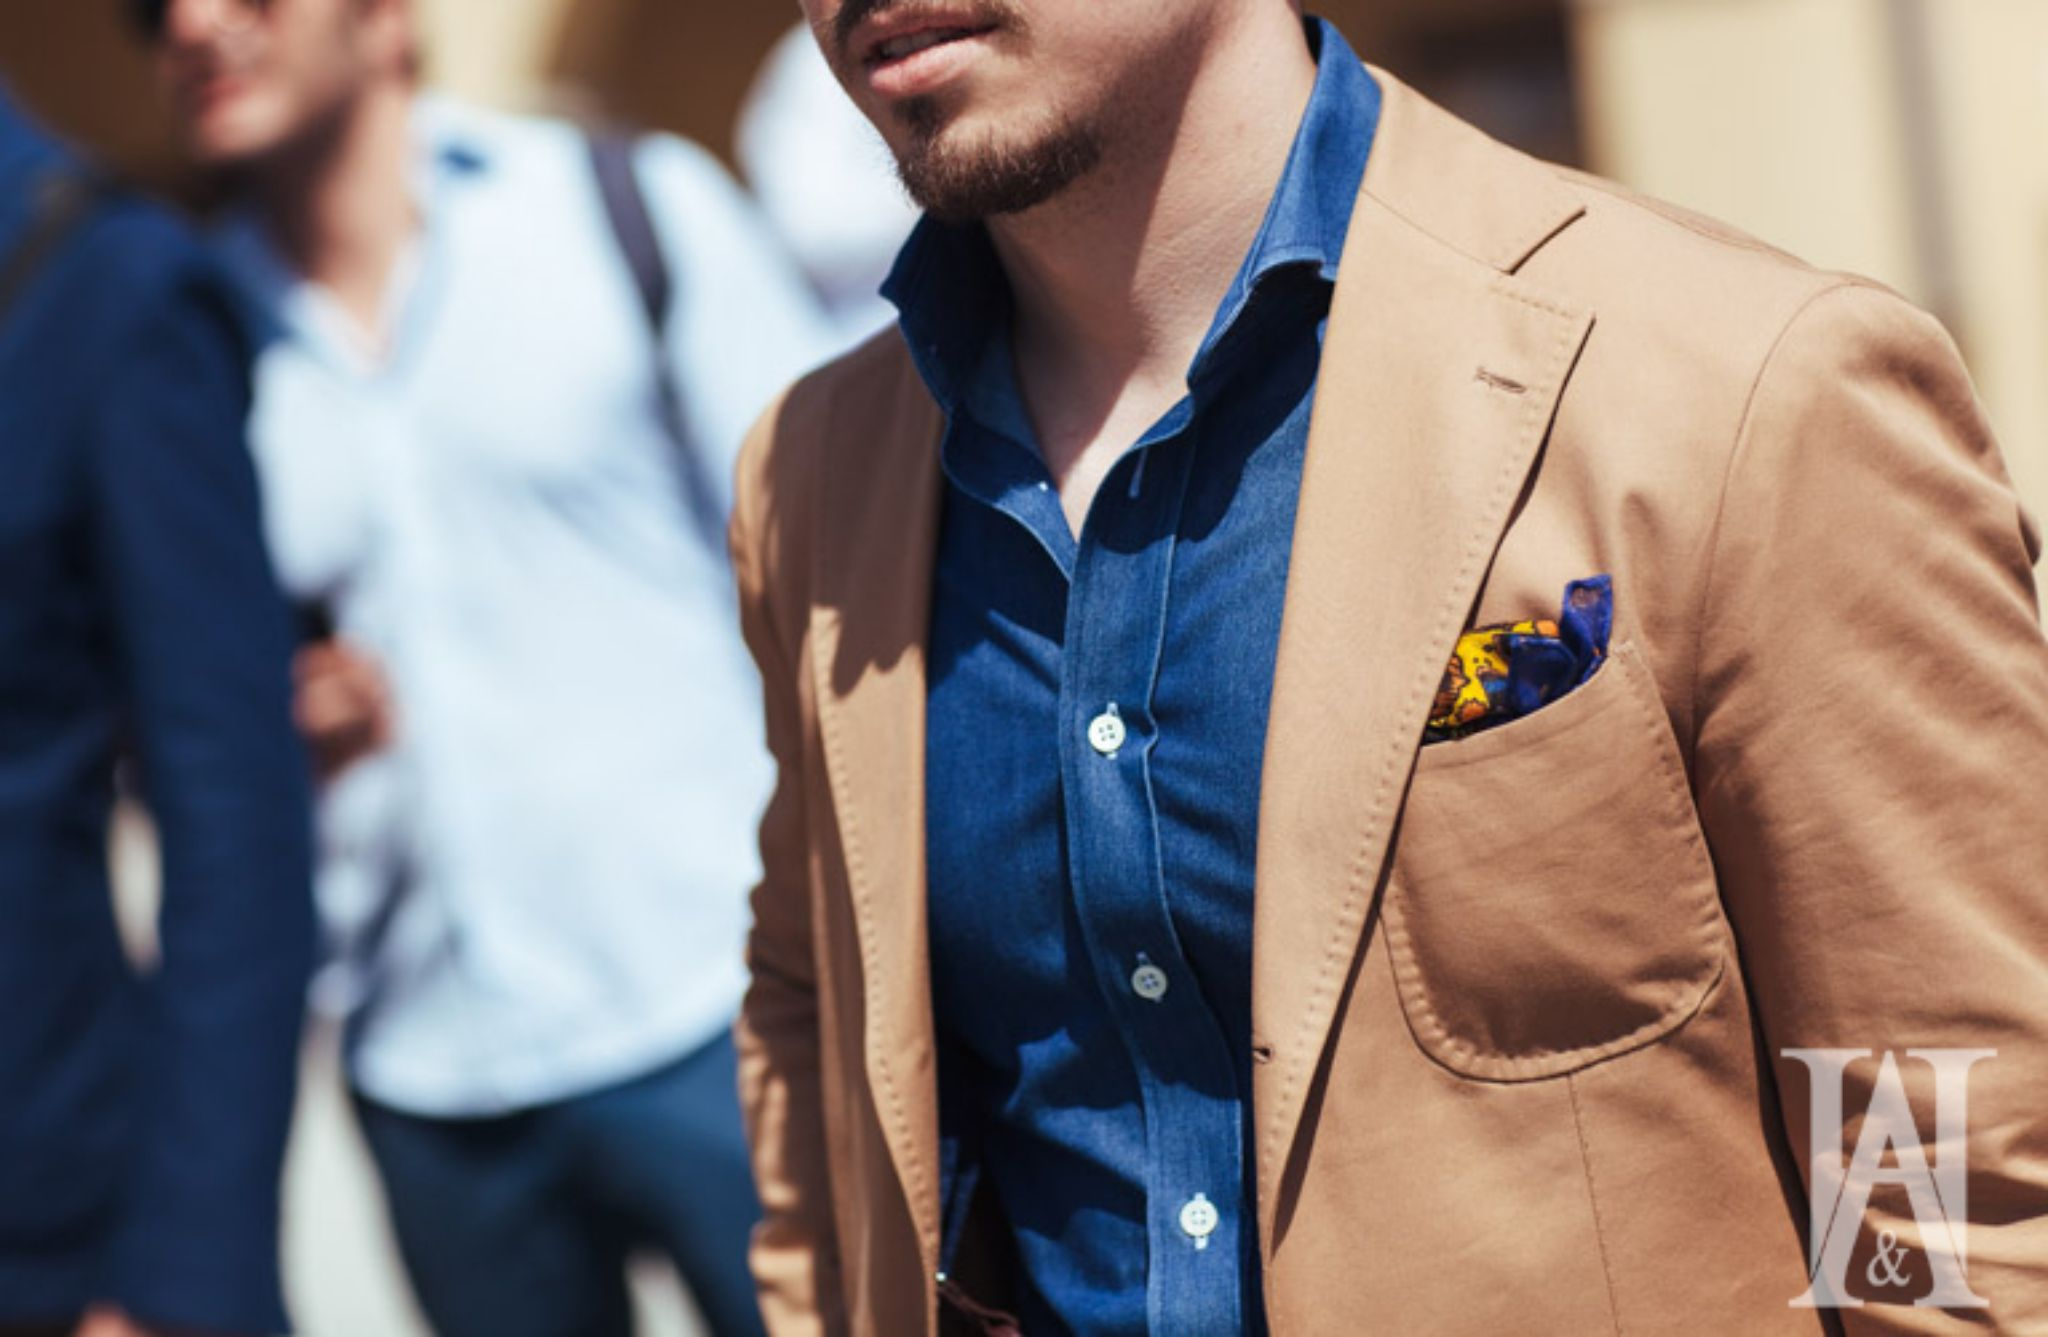 Pitti Uomo 90 preview - Cotton suit with denim shirt